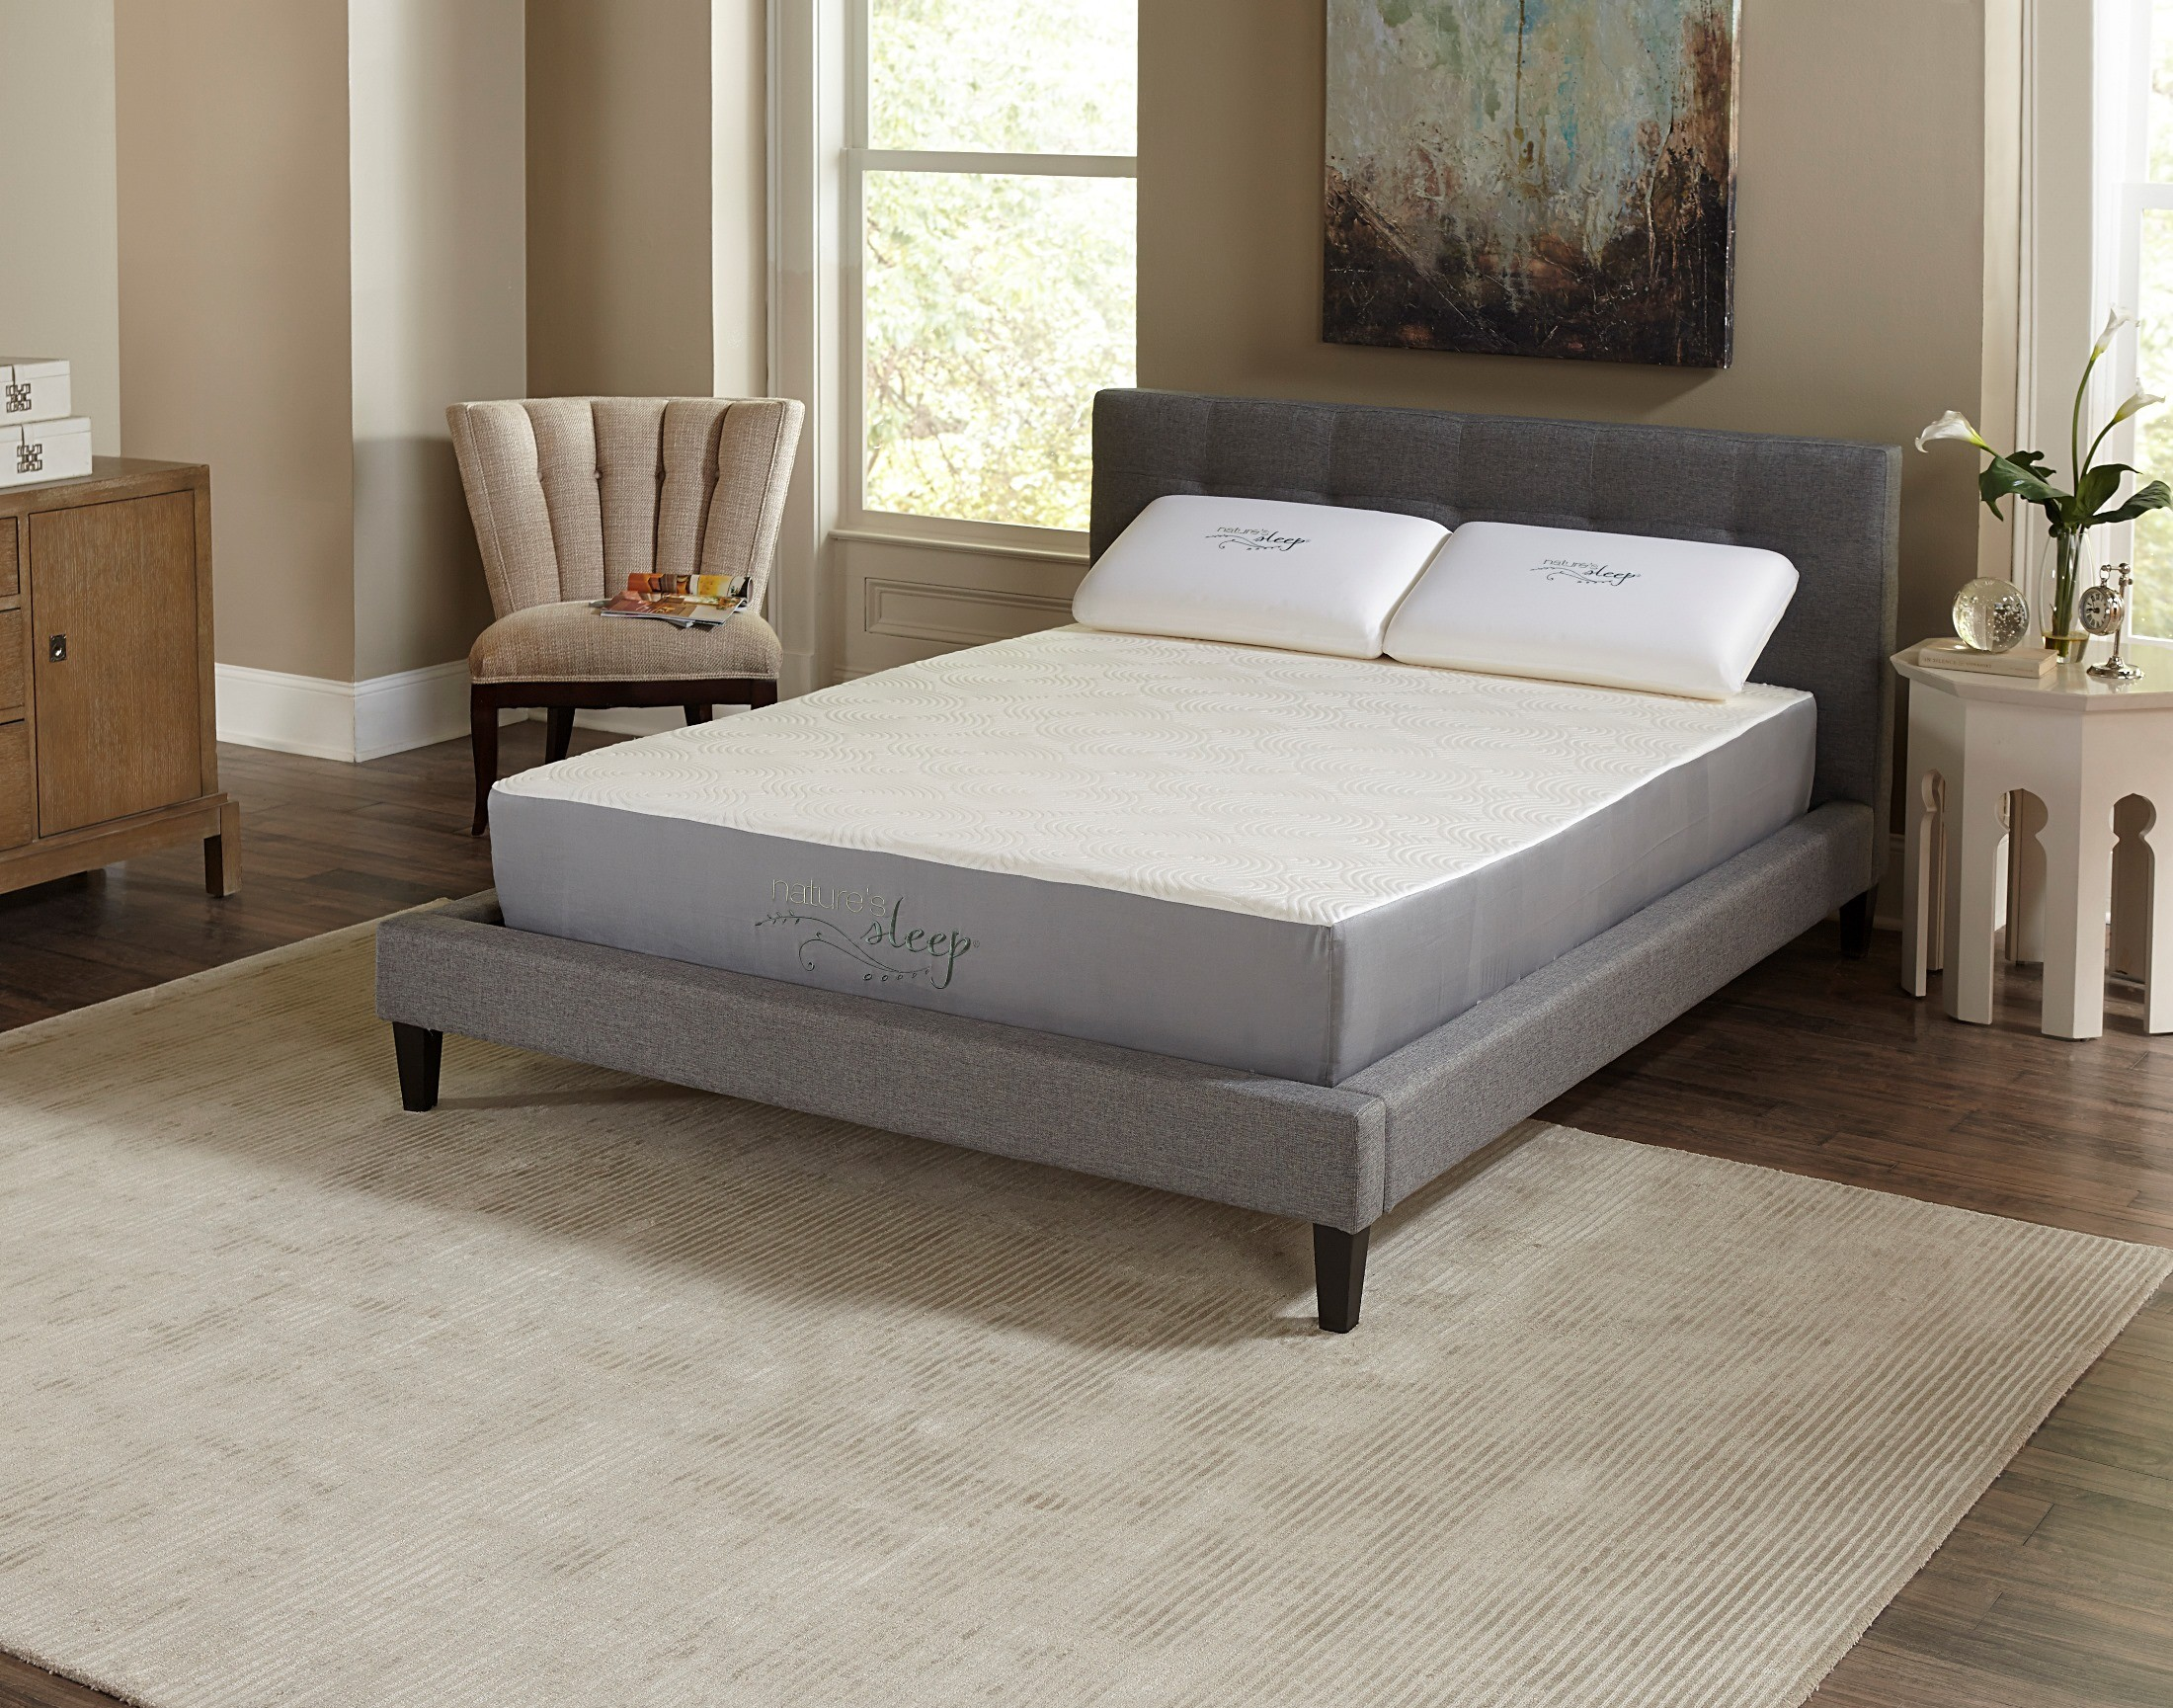 10 visco memory foam twin long mattress from nature 39 s. Black Bedroom Furniture Sets. Home Design Ideas